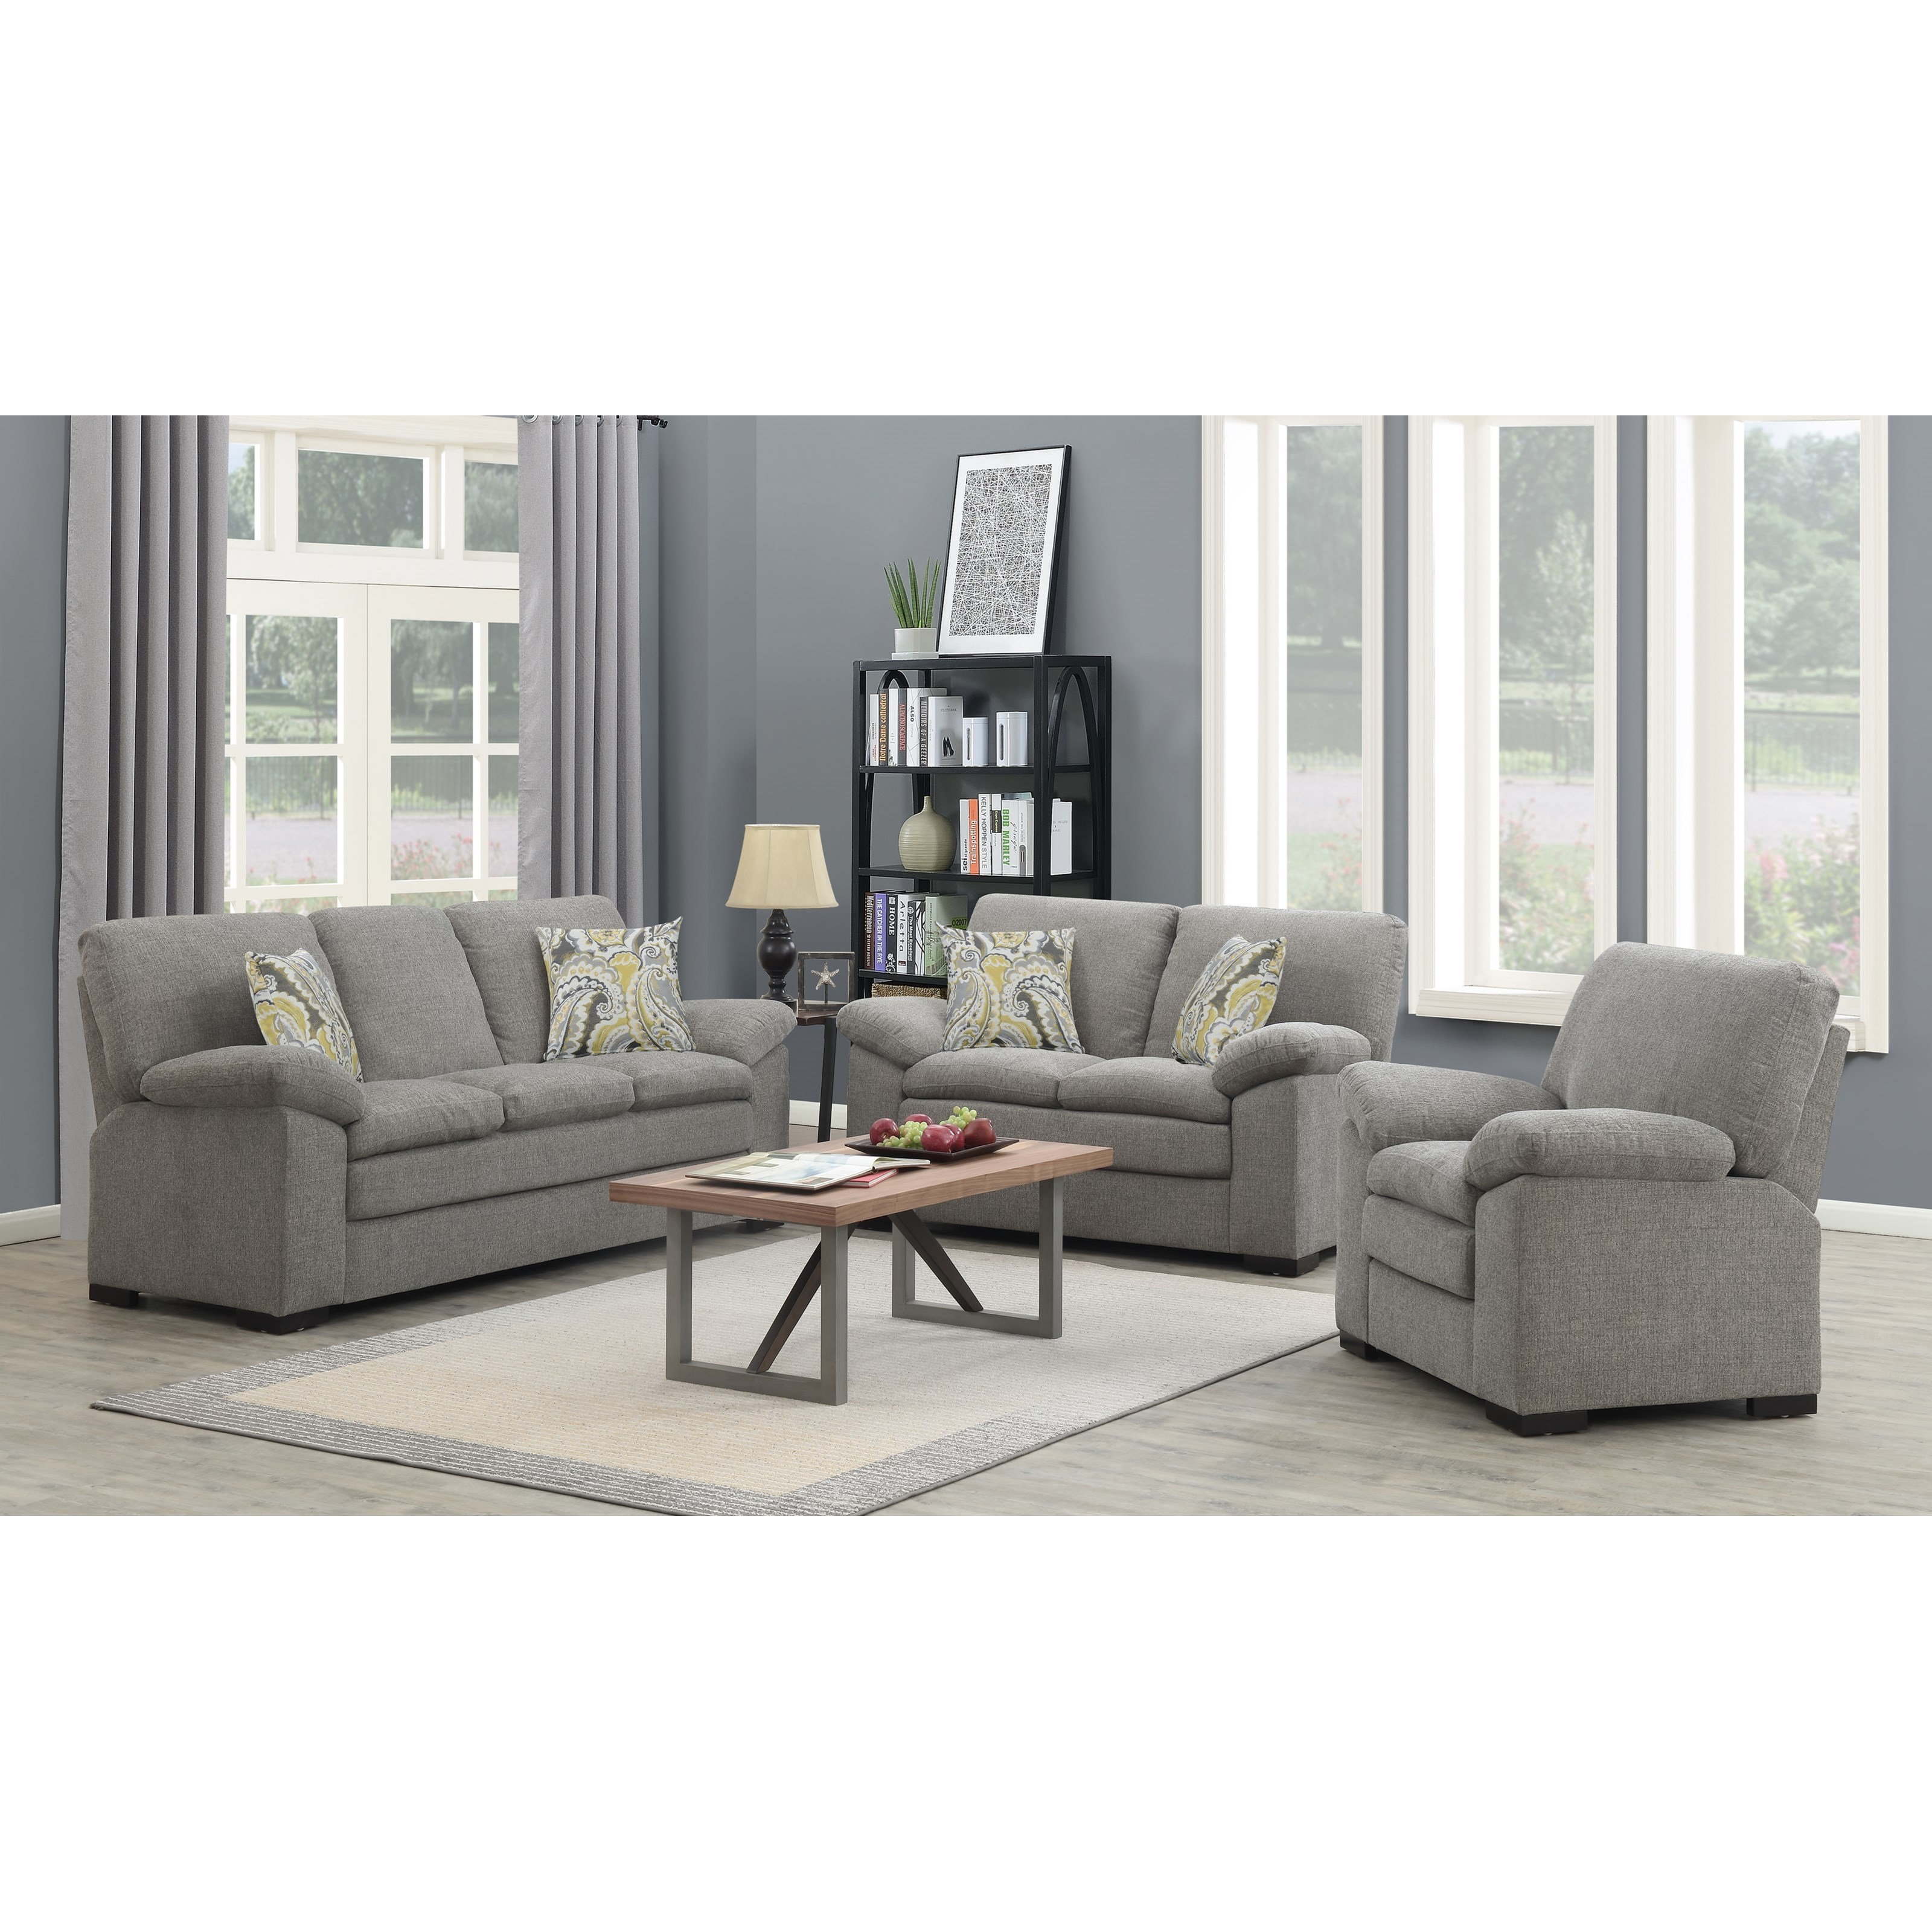 Grandview Living Room Group by Emerald at Northeast Factory Direct